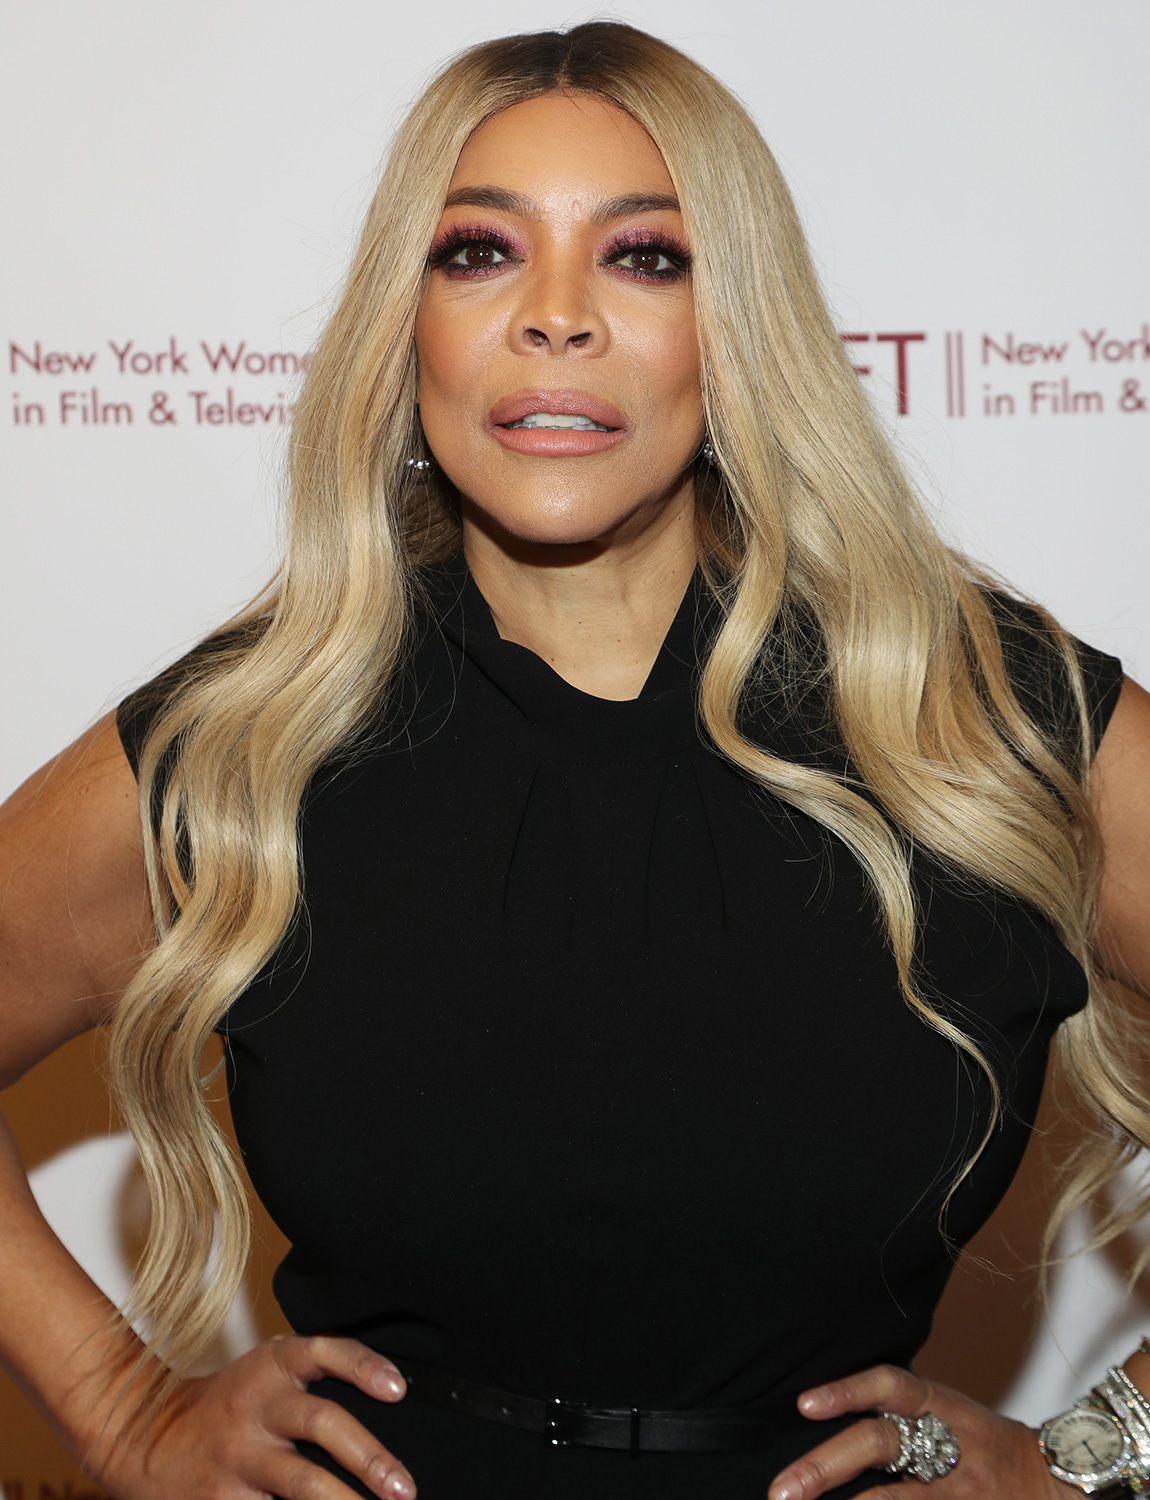 When Does The Wendy Williams Show Return After Christmas 2020 The Wendy Williams Show Not Returning Until It Can Go Back in the